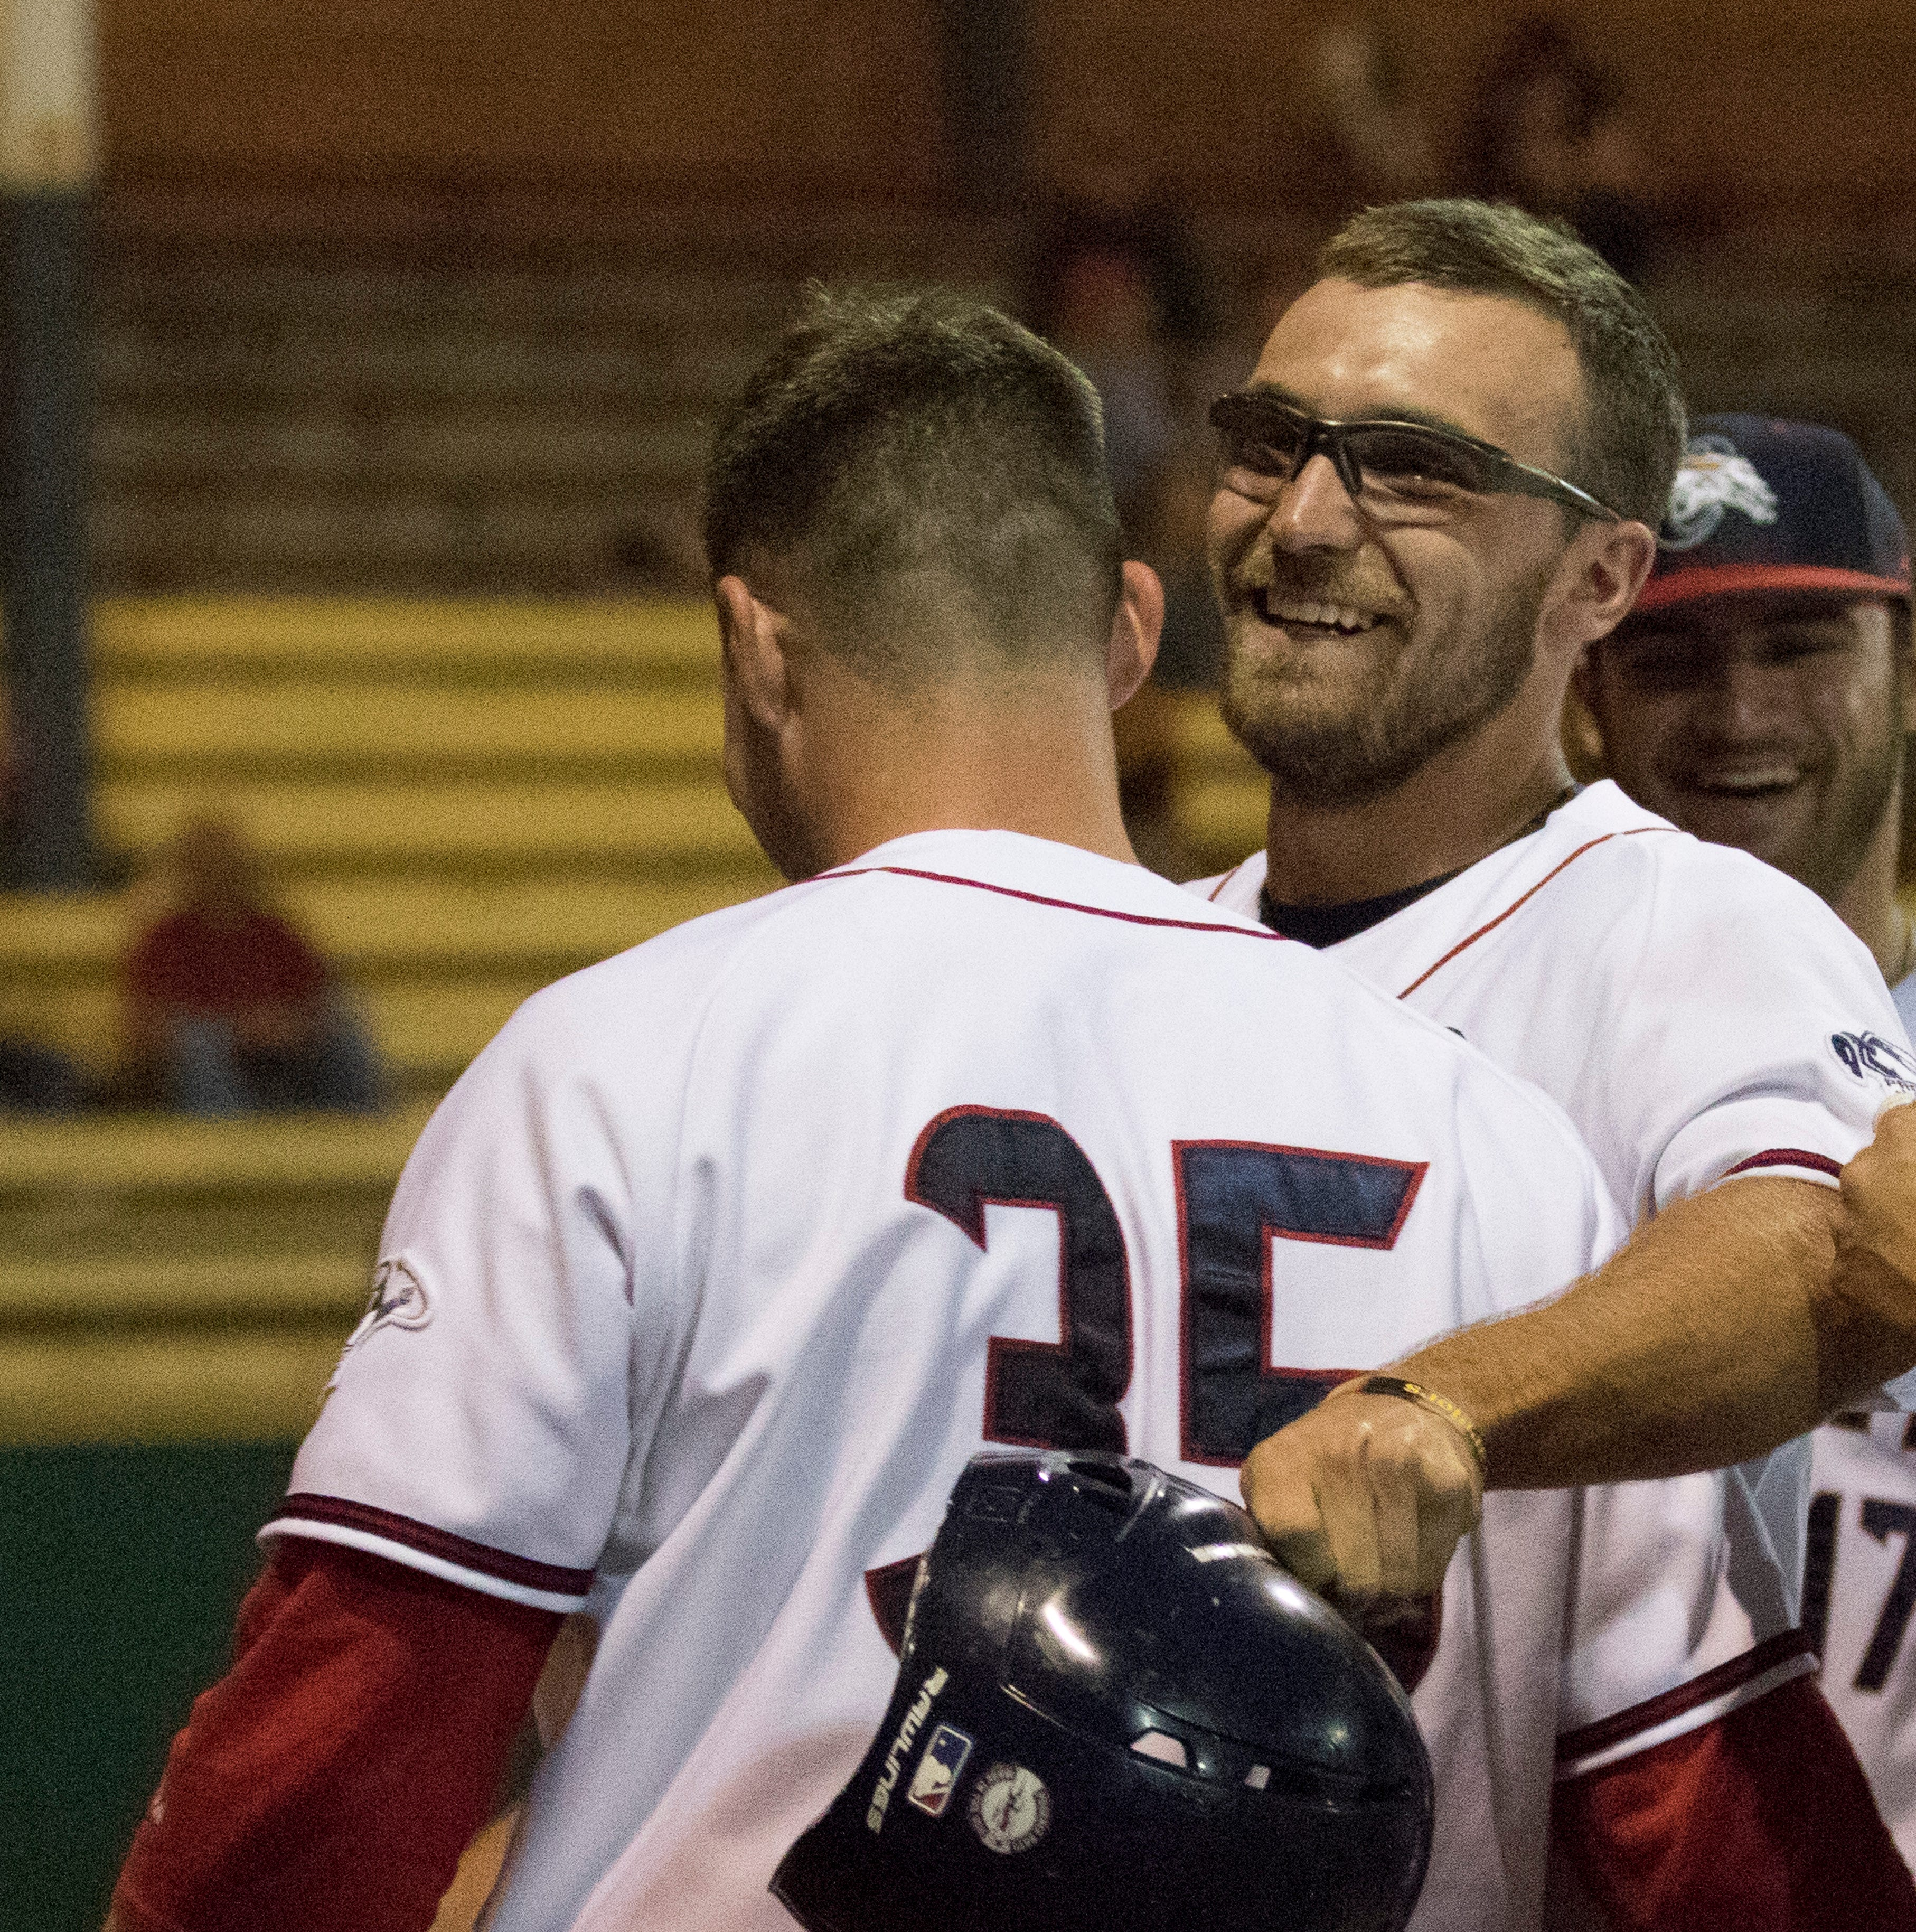 Paints rain victorious; Roberts homer wins game 2-1